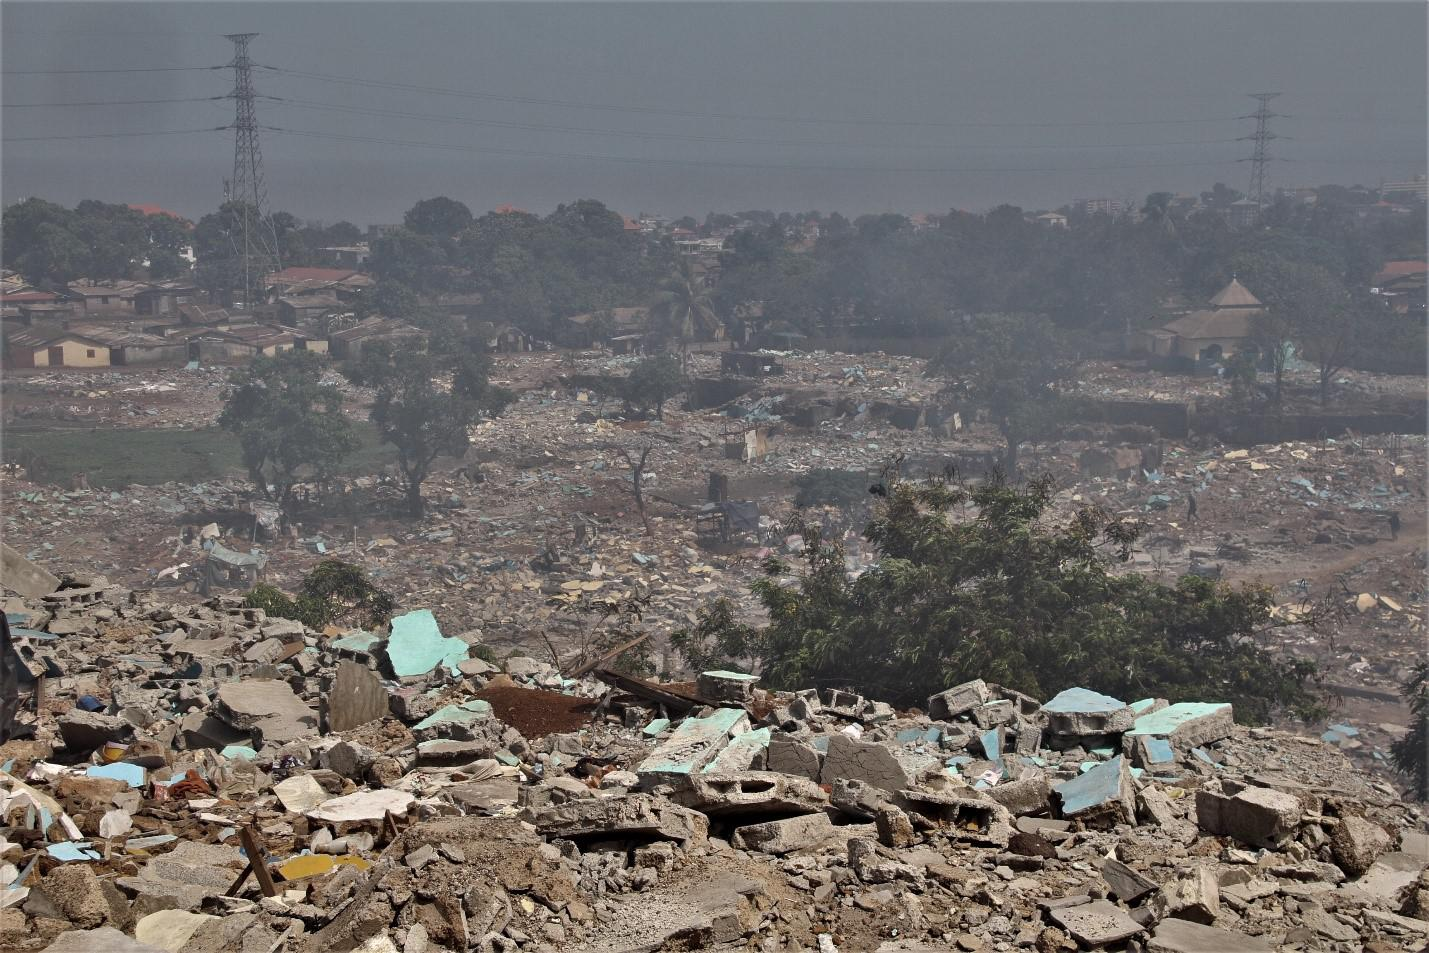 Rubble of demolished homes in the Dar-Es-Salam neighborhood of Conakry, Guinea's capital, on June 8, 2019.